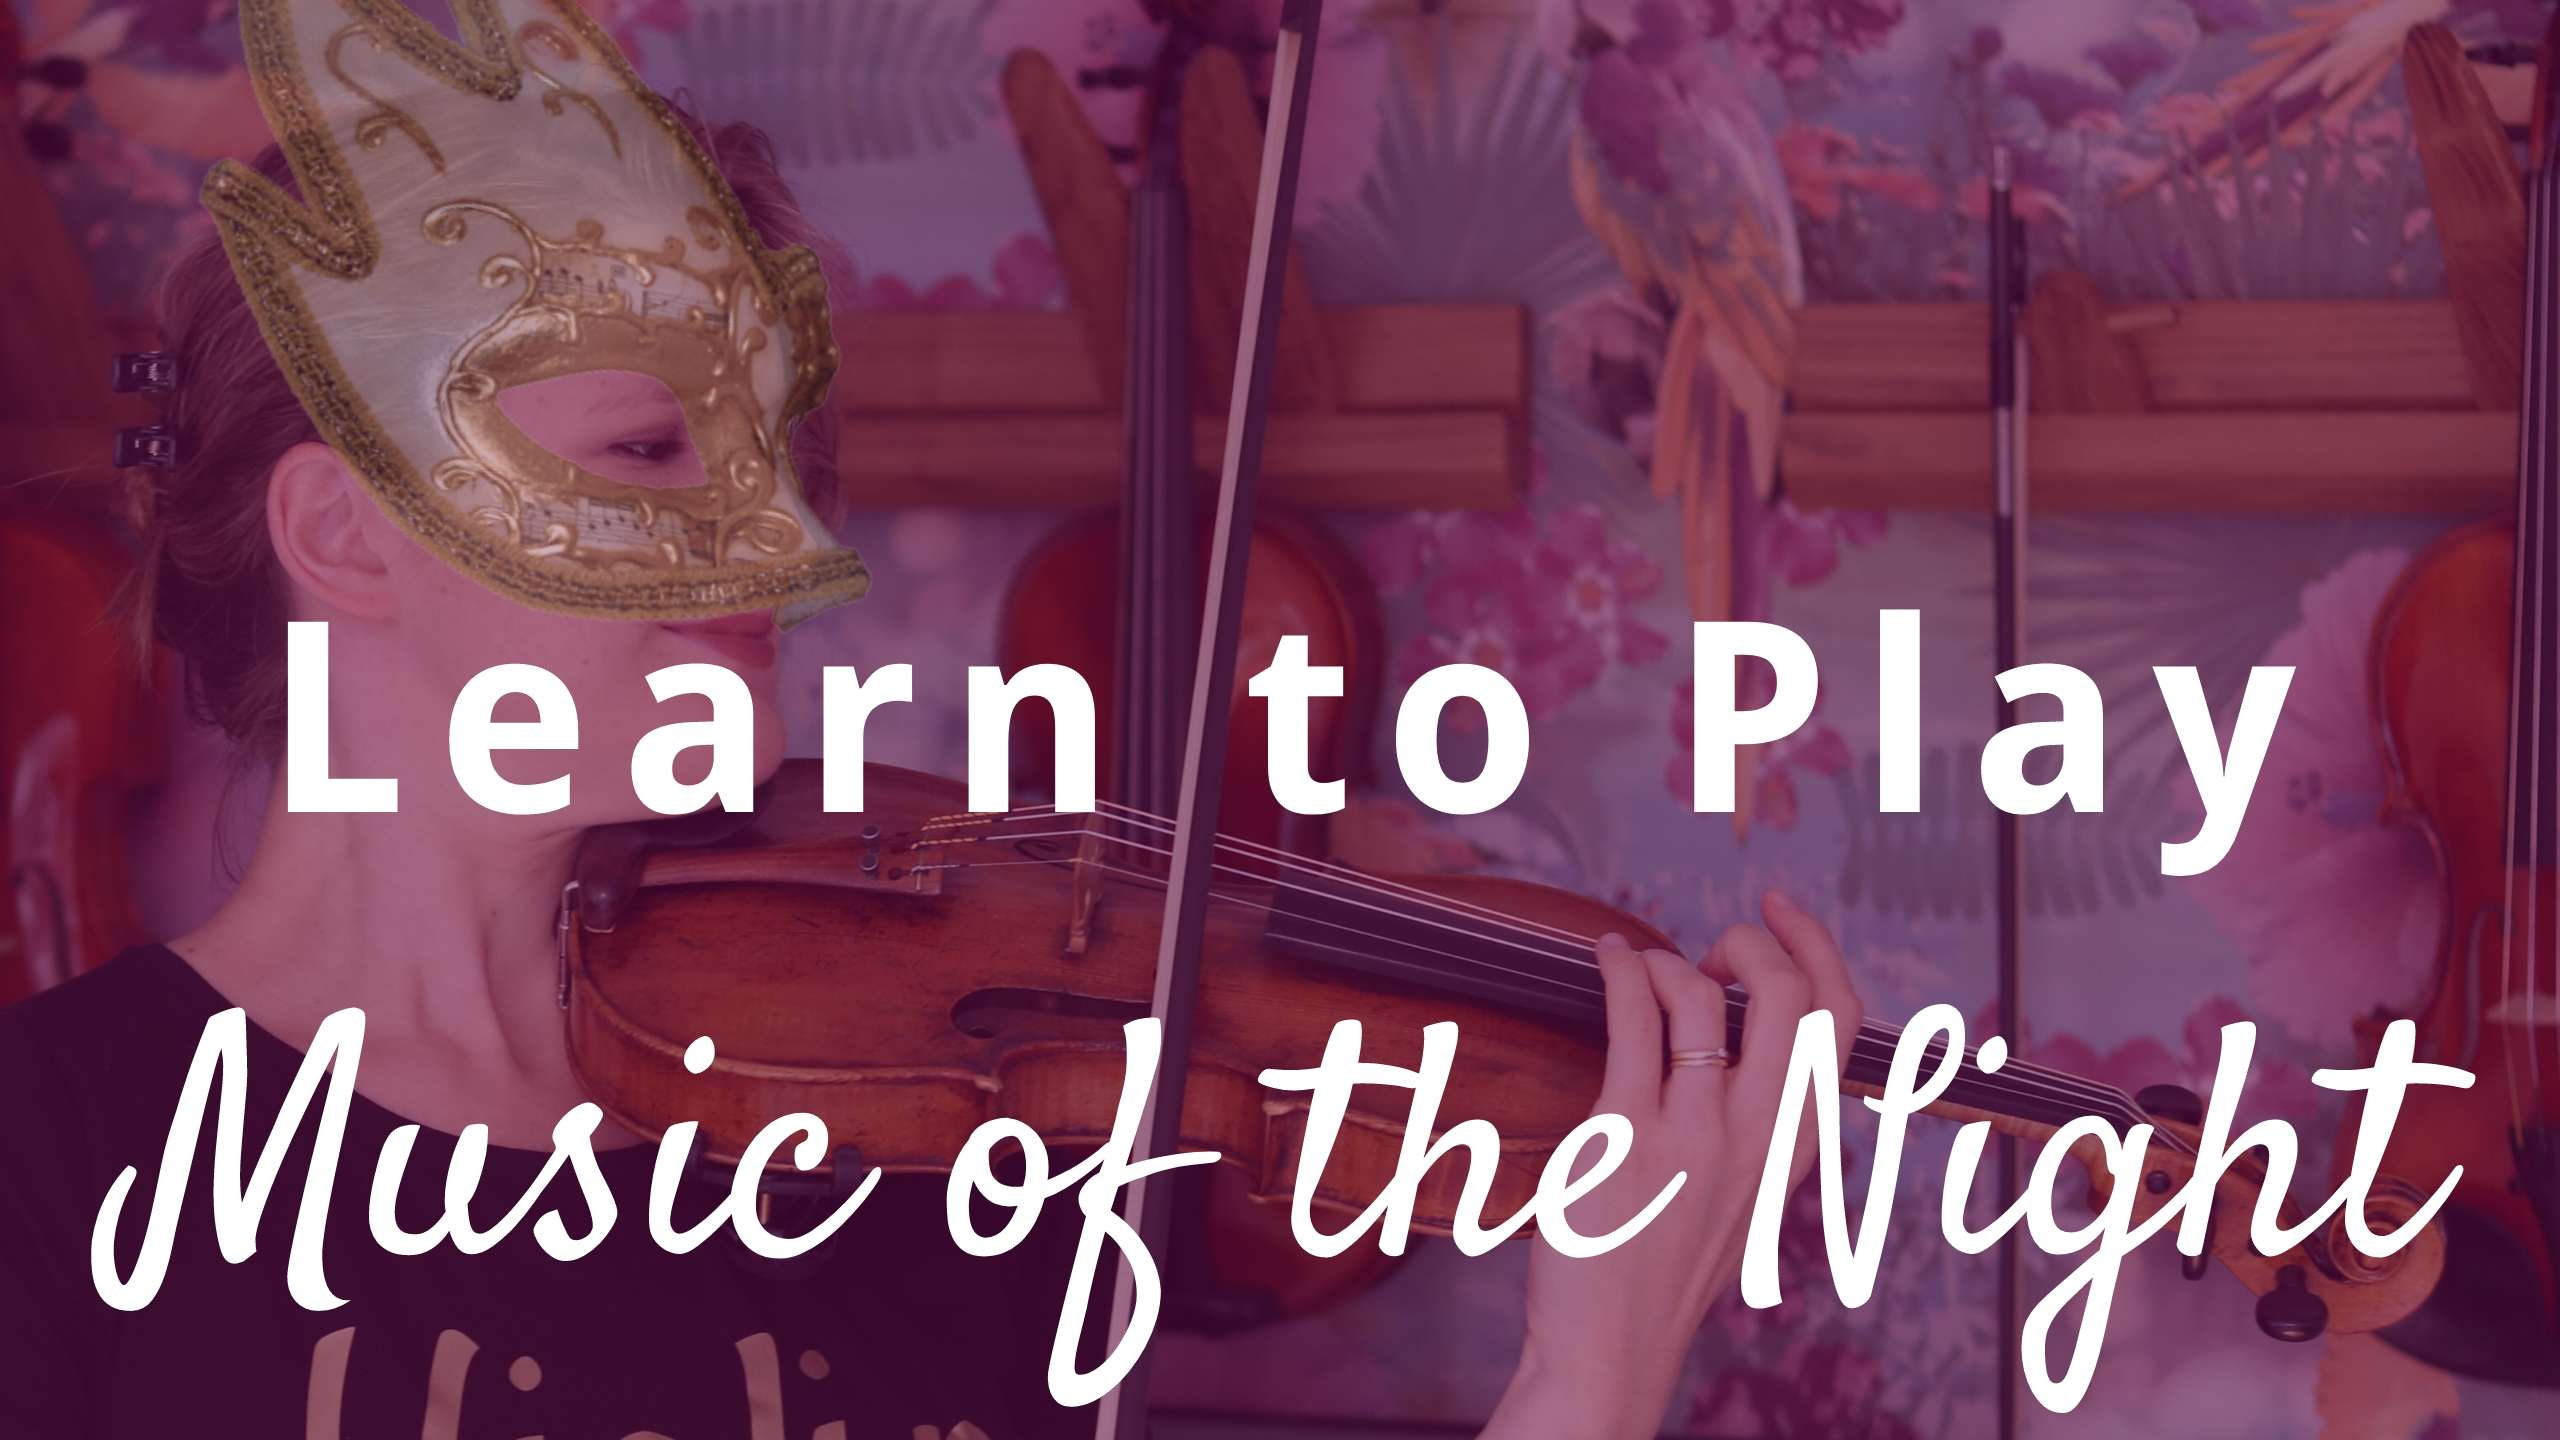 Learn to play Music of the Night from Phantom of the Opera by Andrew Lloyd Webber with this violin tutorial